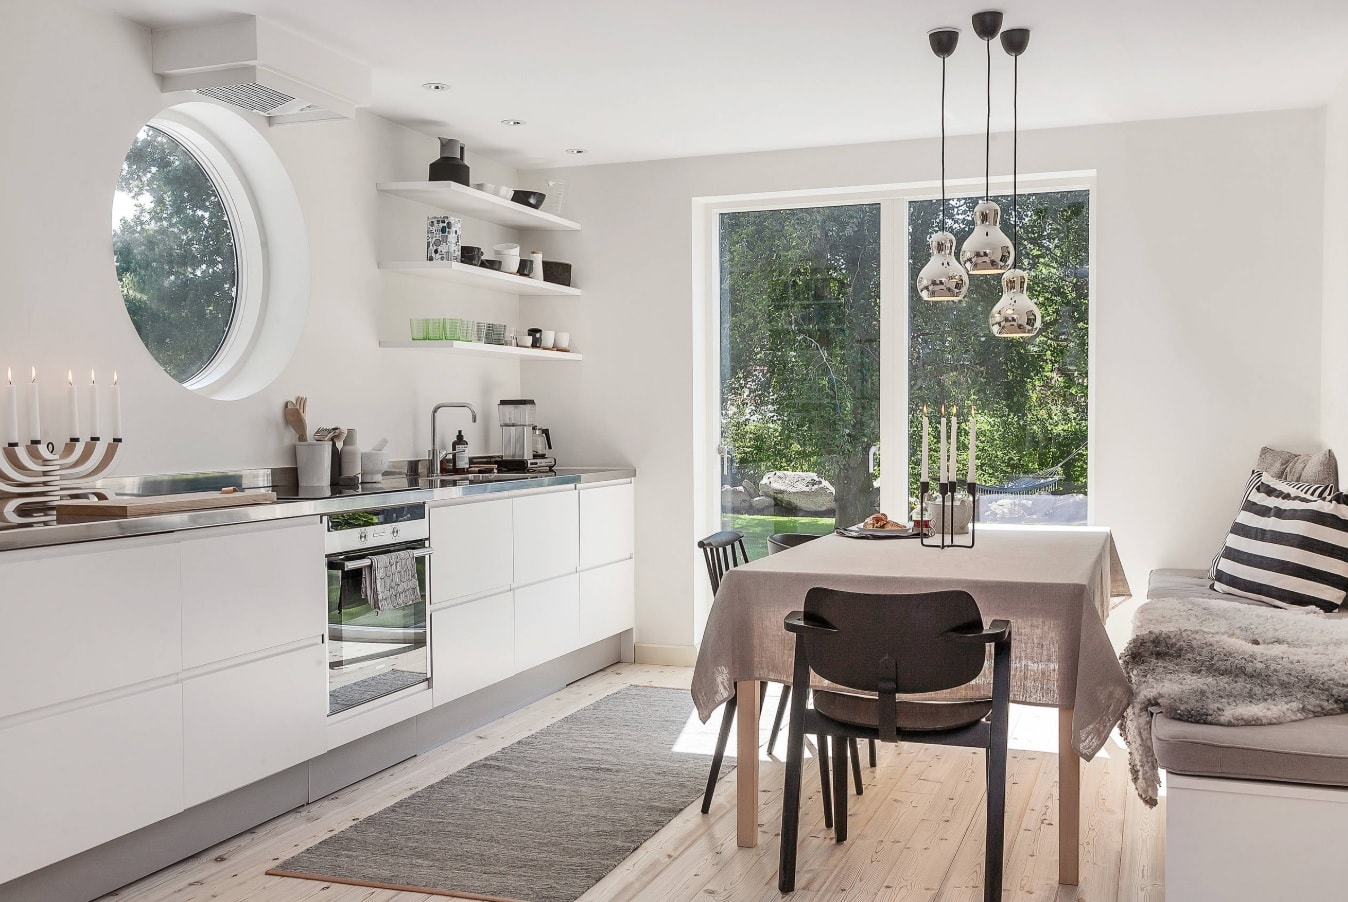 Nordic Interior Design Examples in Real Homes Photos. Gorgeous minimalistic kitchen in white with large balcony window